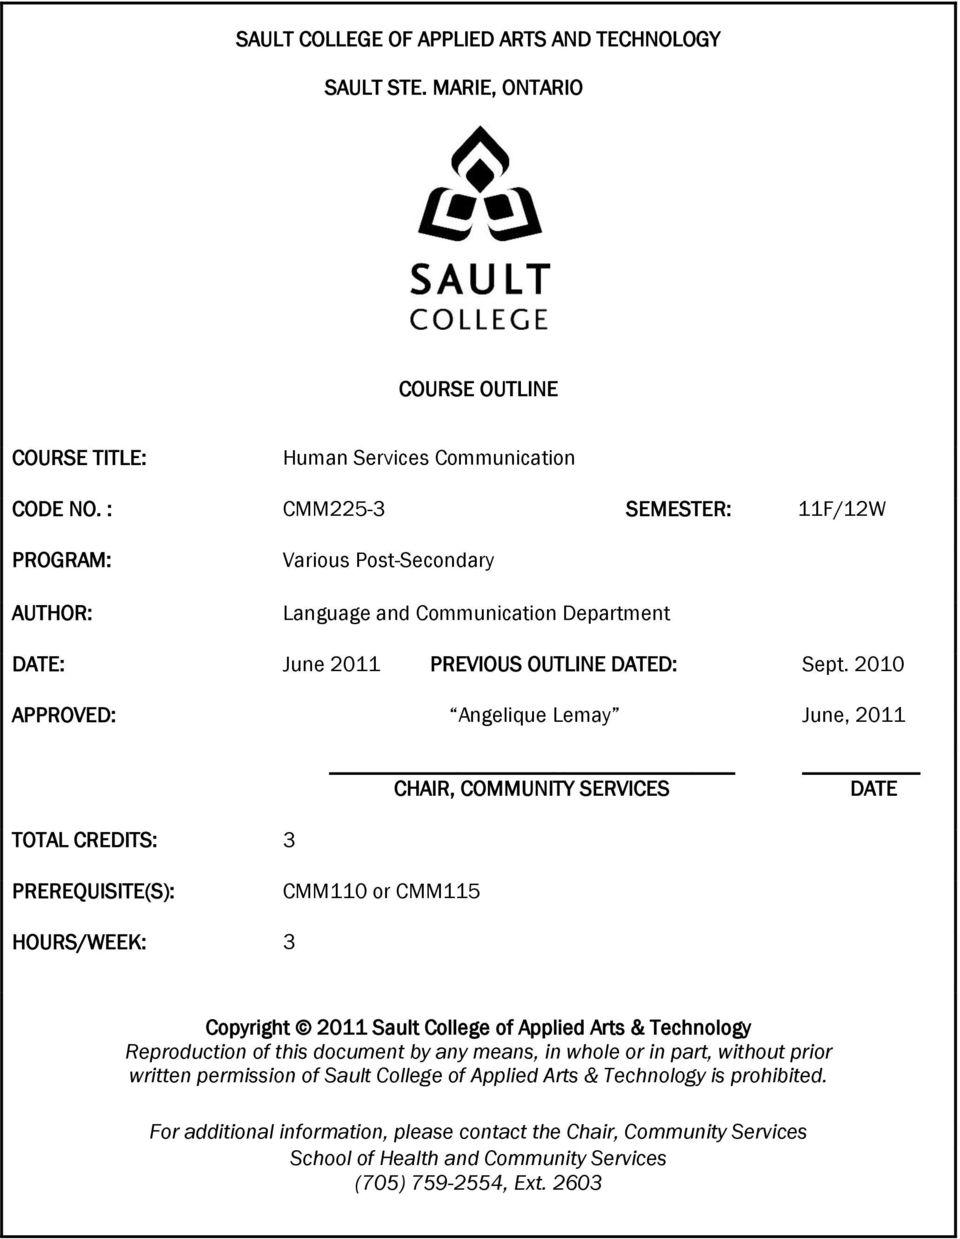 Sault College Of Applied Arts And Technology Sault Ste Marie Ontario Course Outline Code No Cmm225 3 Semester 11f 12w Pdf Free Download